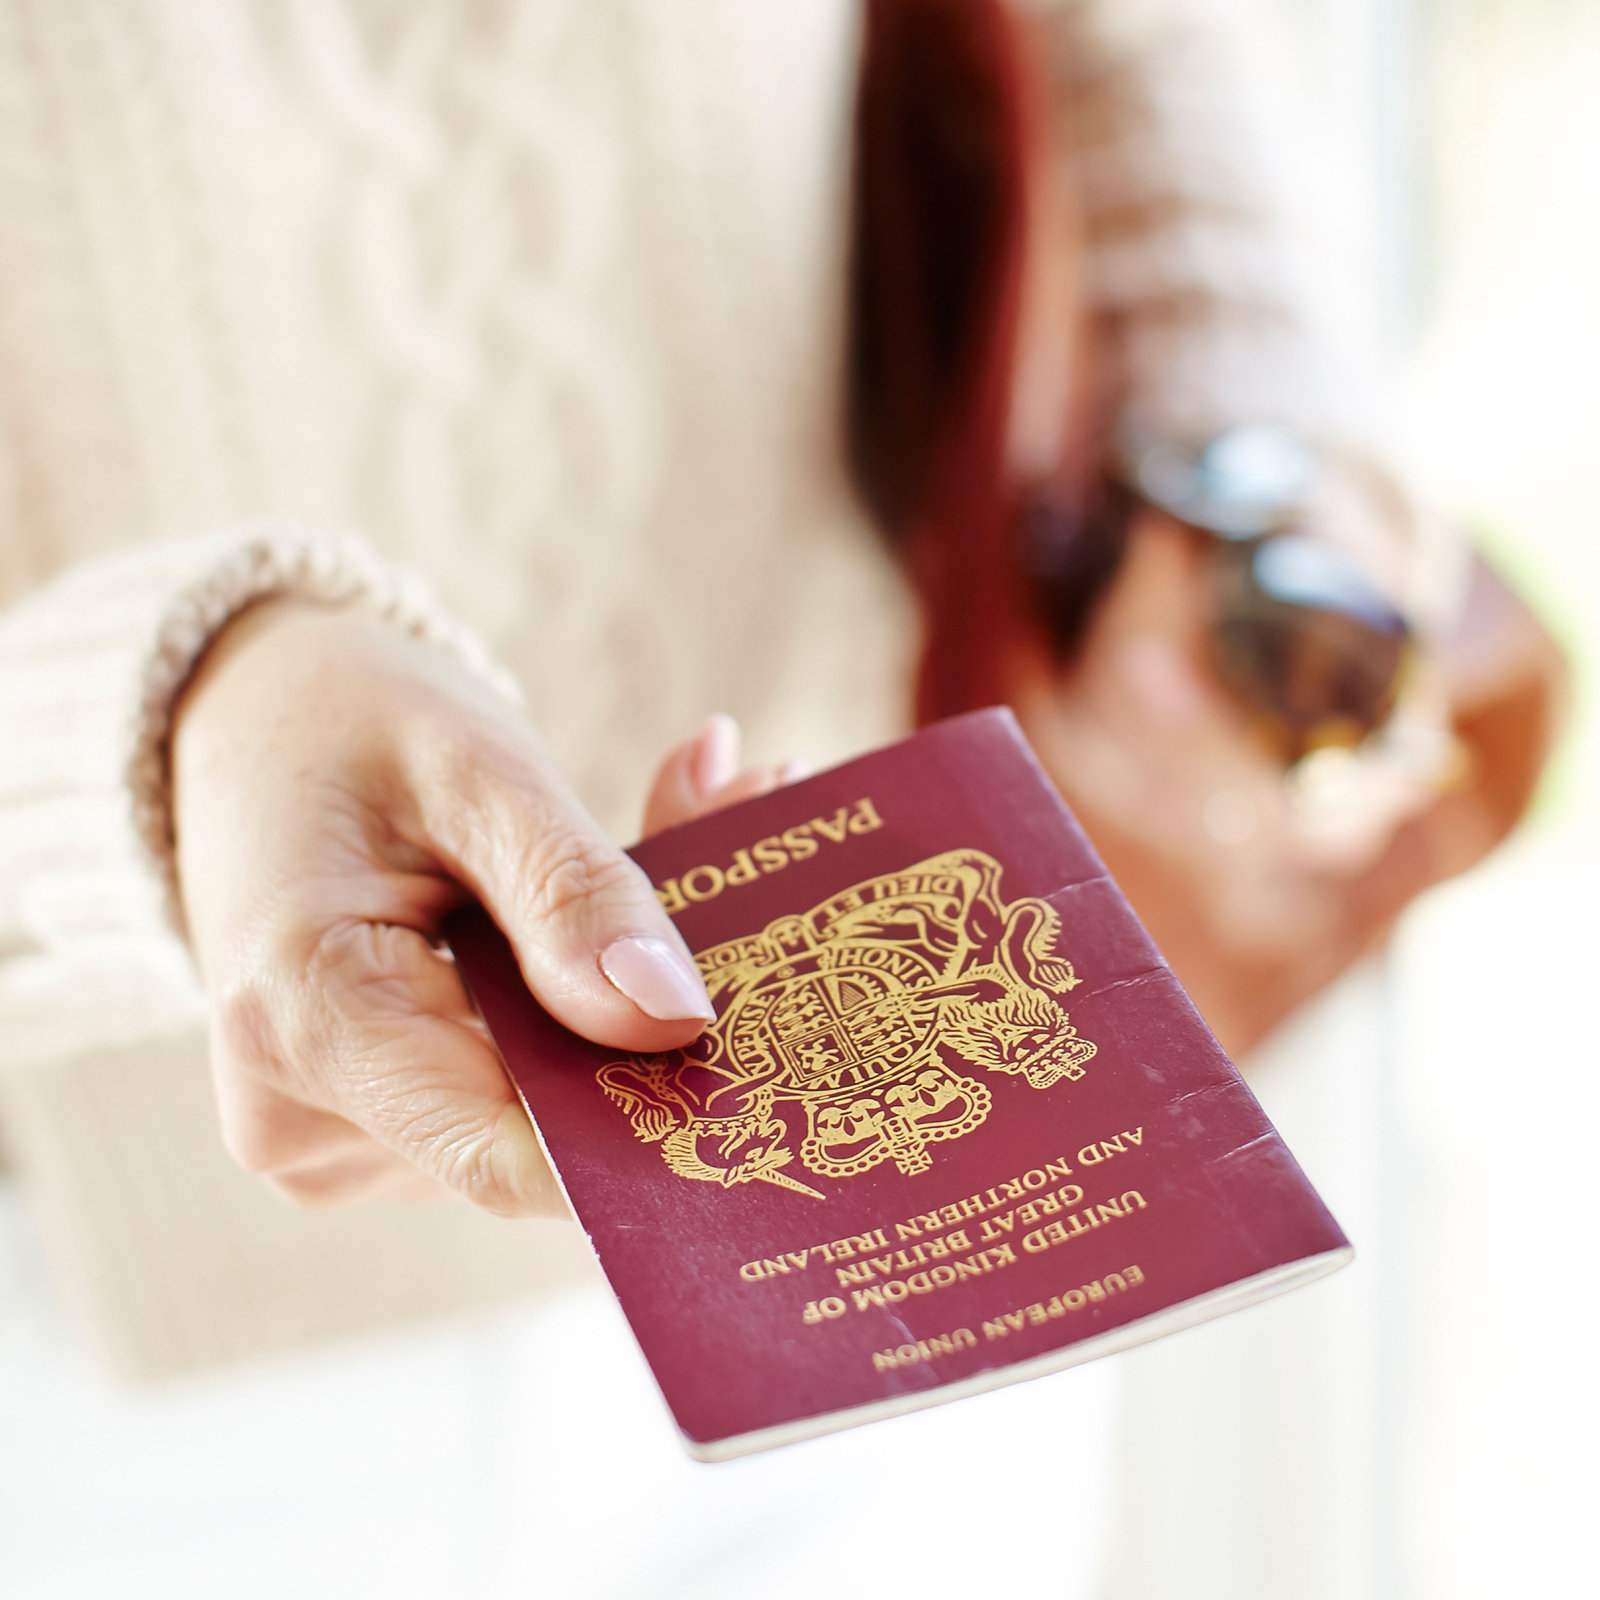 Why Do European Hotels Require Passports at Check-in?